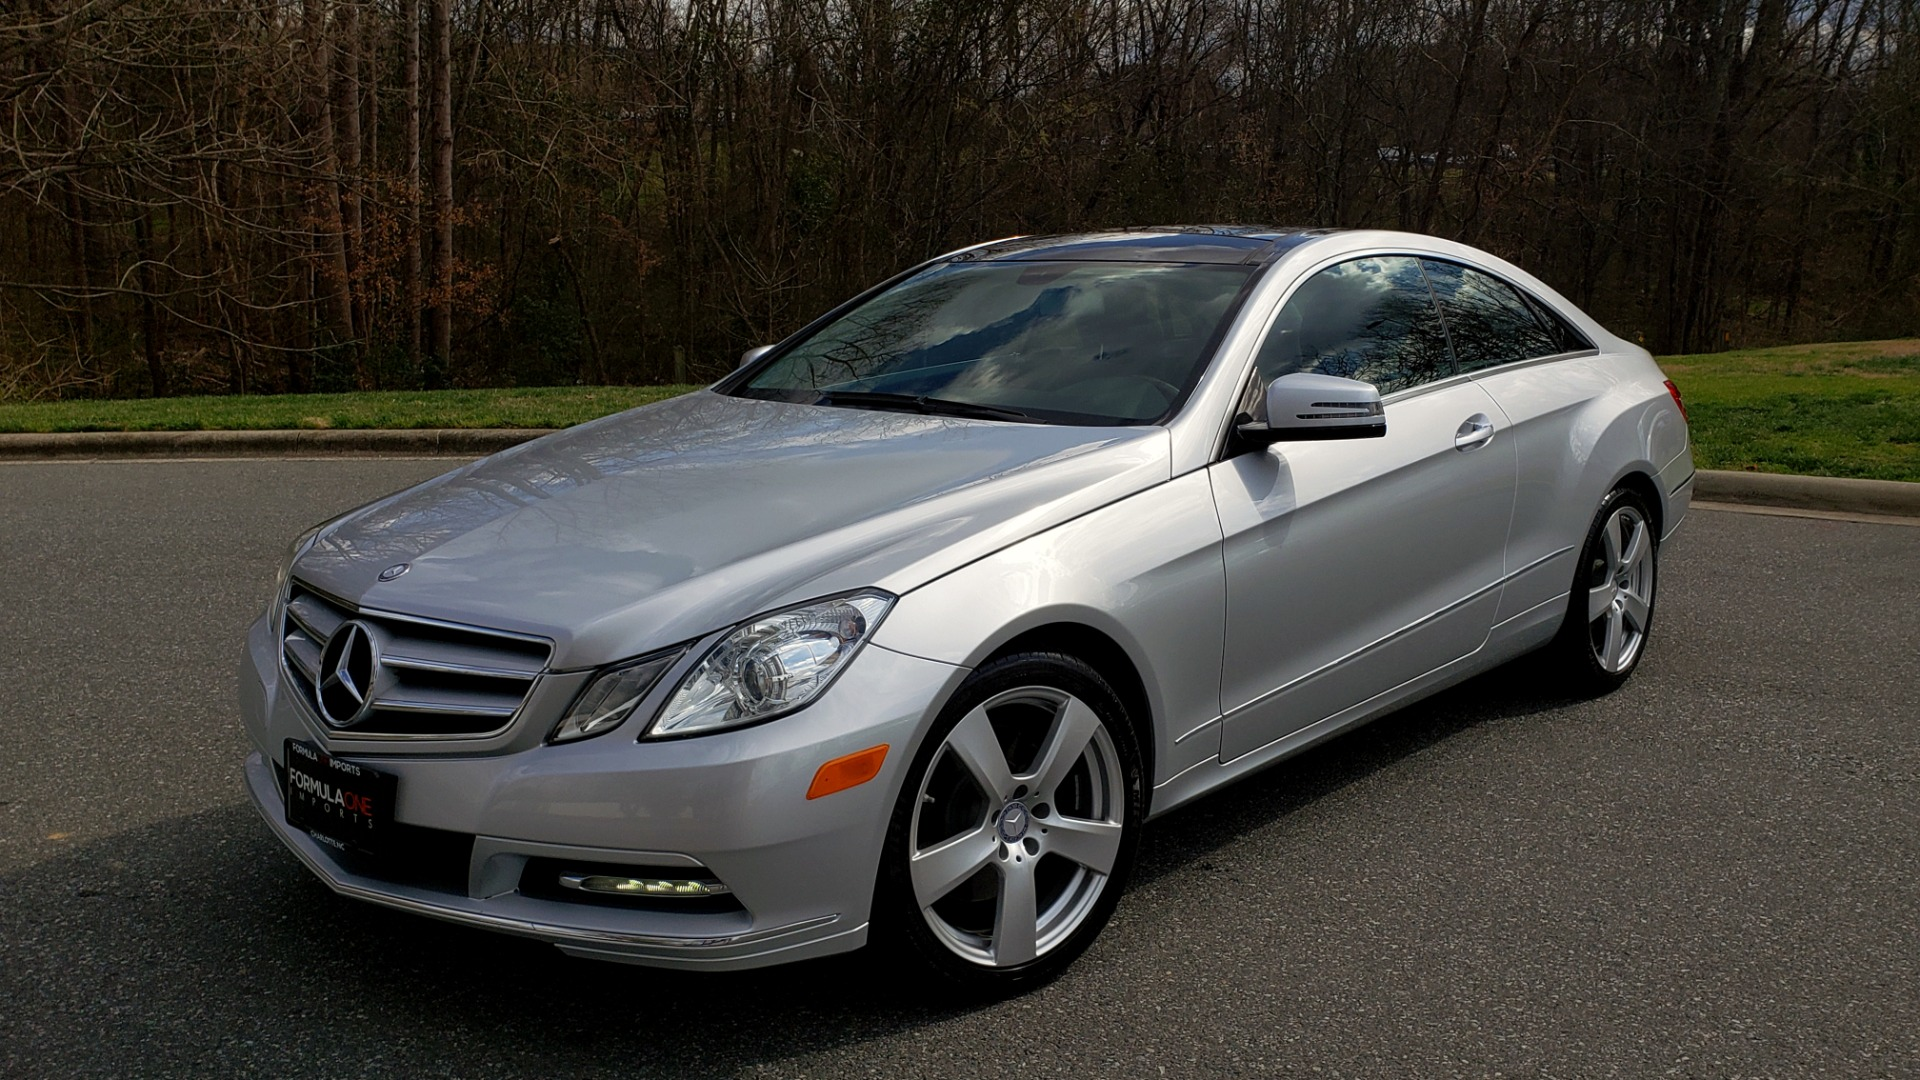 Used 2013 Mercedes-Benz E-CLASS E 350 COUPE PREM / NAV / PANO-ROFF / KEYLESS-GO / REARVIEW for sale Sold at Formula Imports in Charlotte NC 28227 1